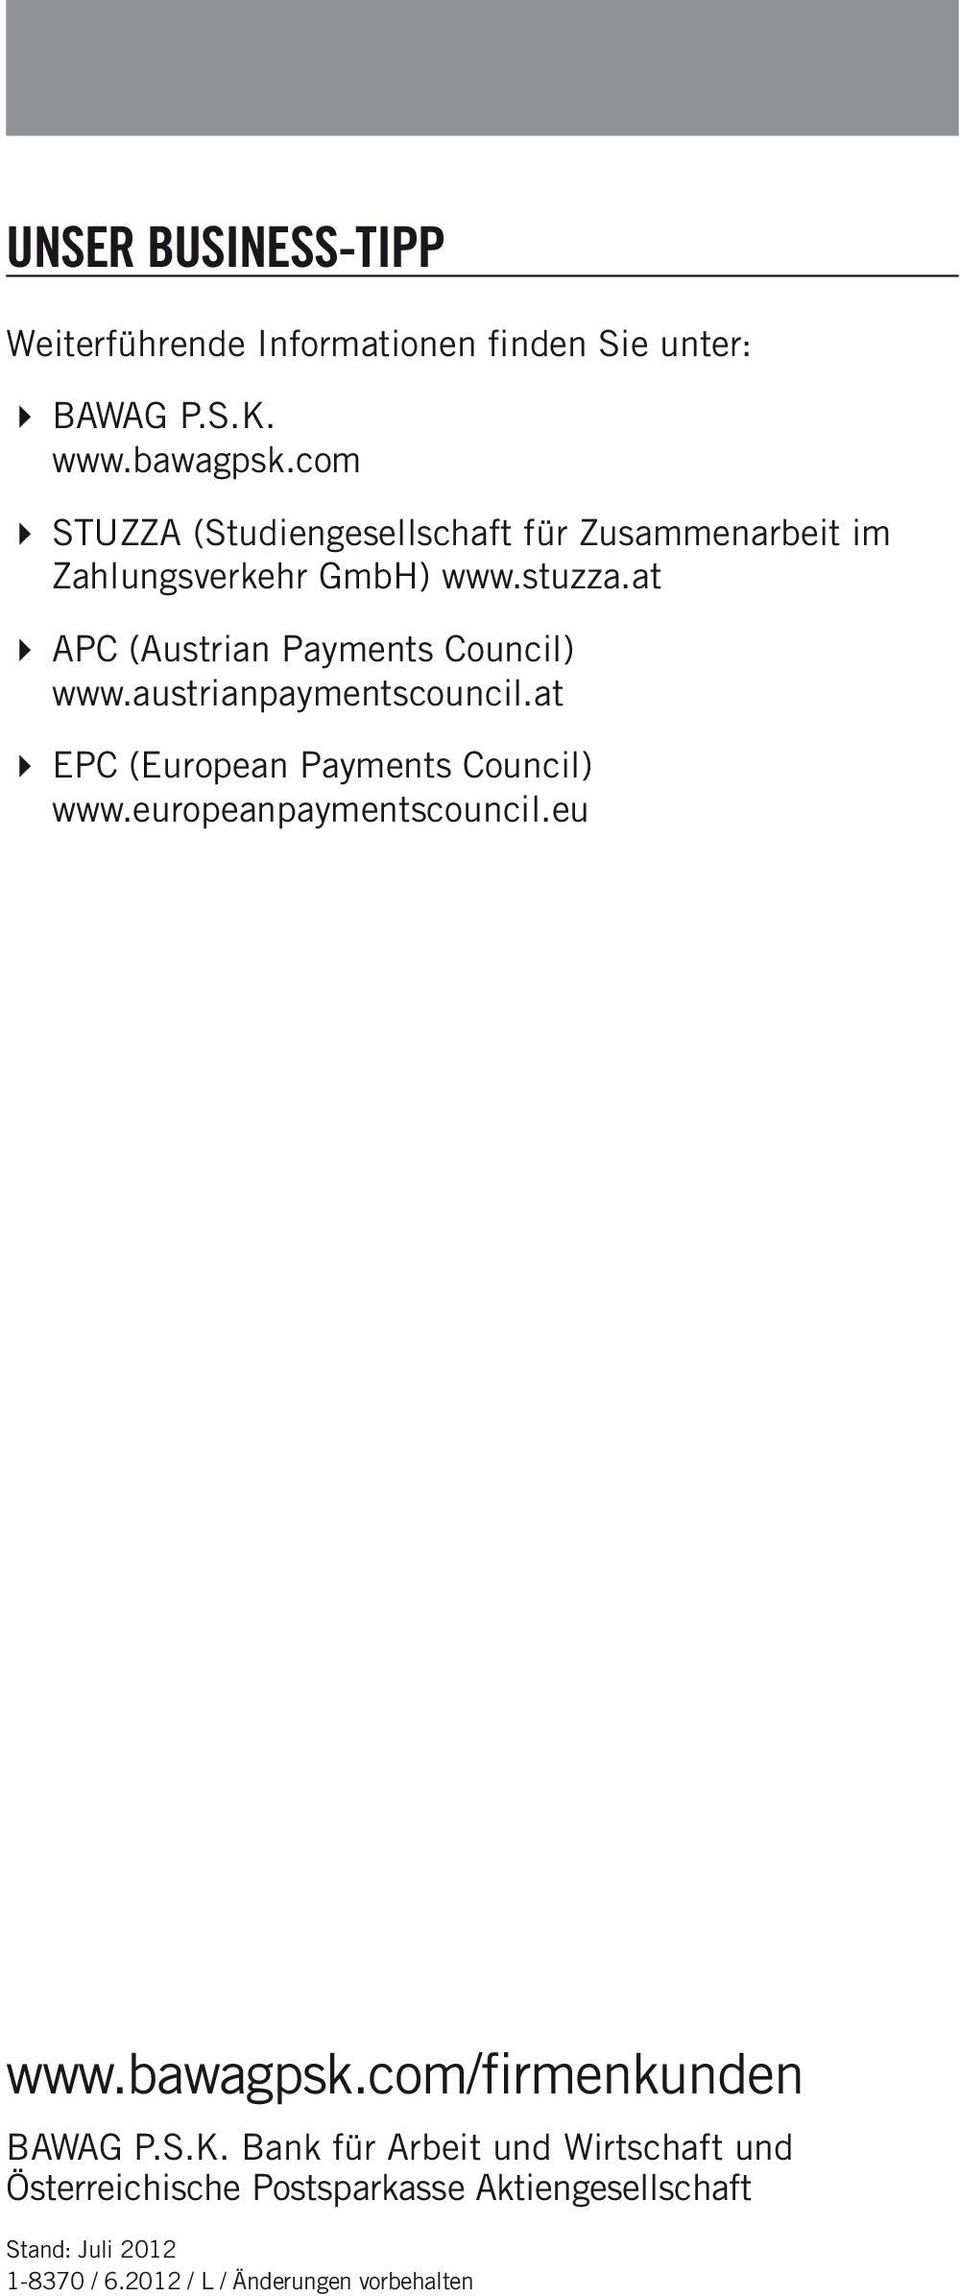 at 4 APC (Austrian Payments Council) www.austrianpaymentscouncil.at 4 EPC (European Payments Council) www.